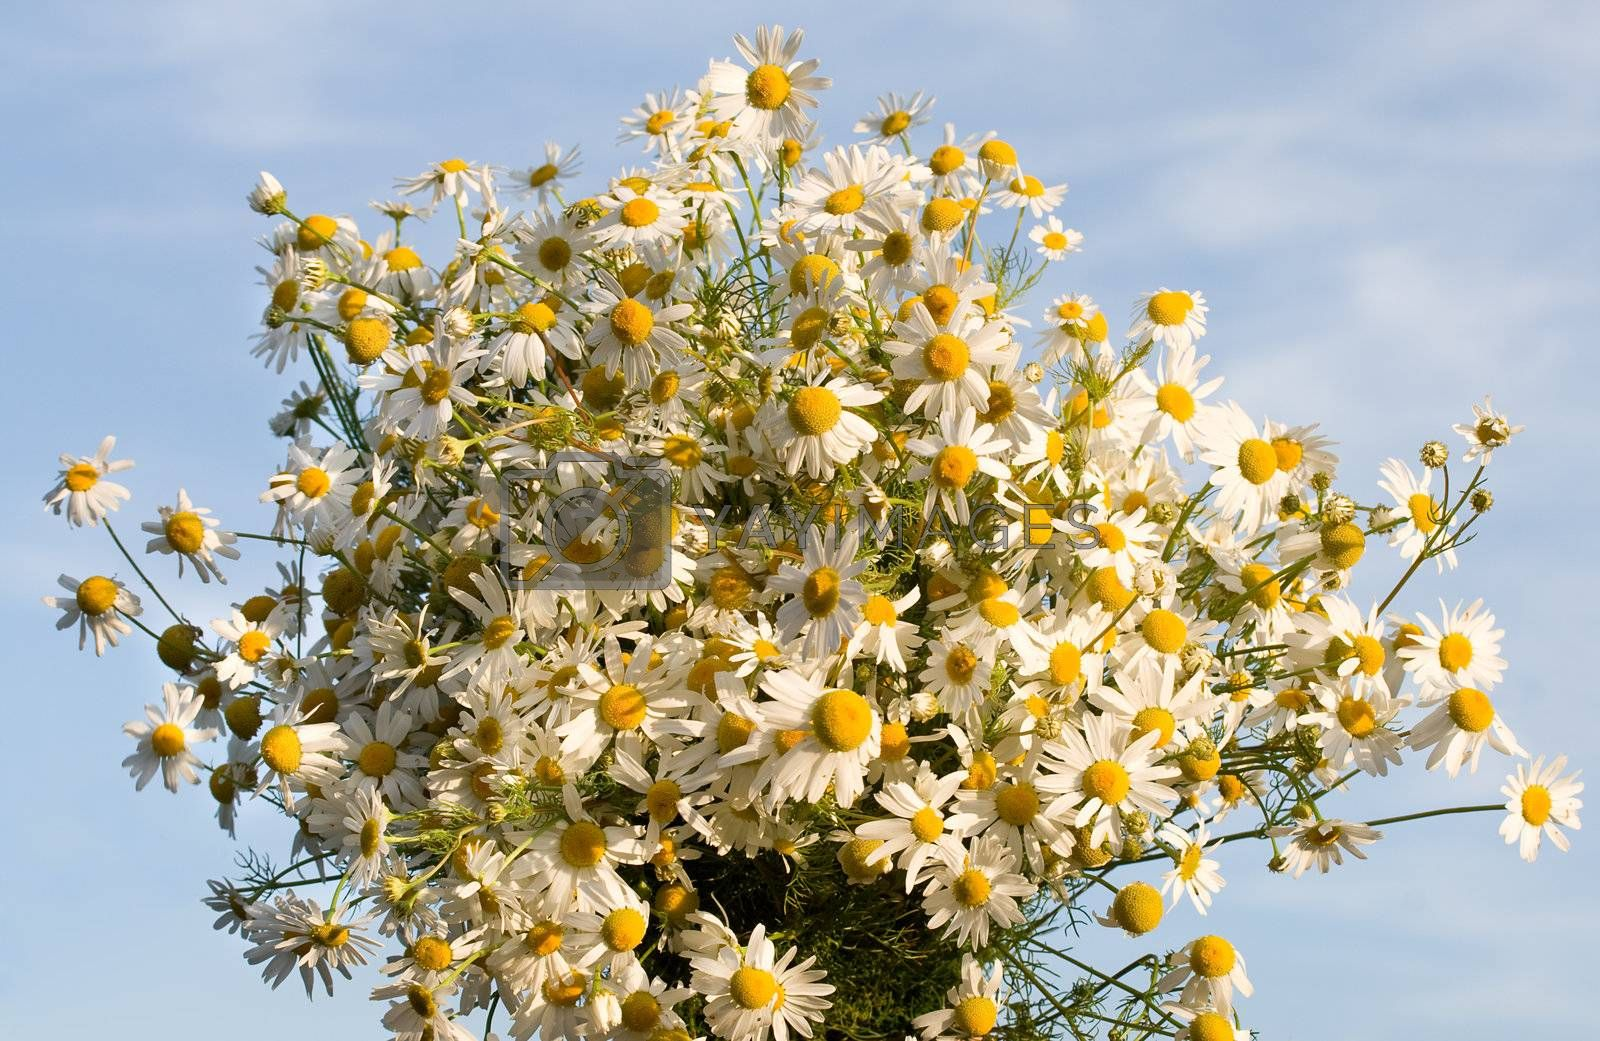 chamomile bouquet against a blue sky background by Alekcey